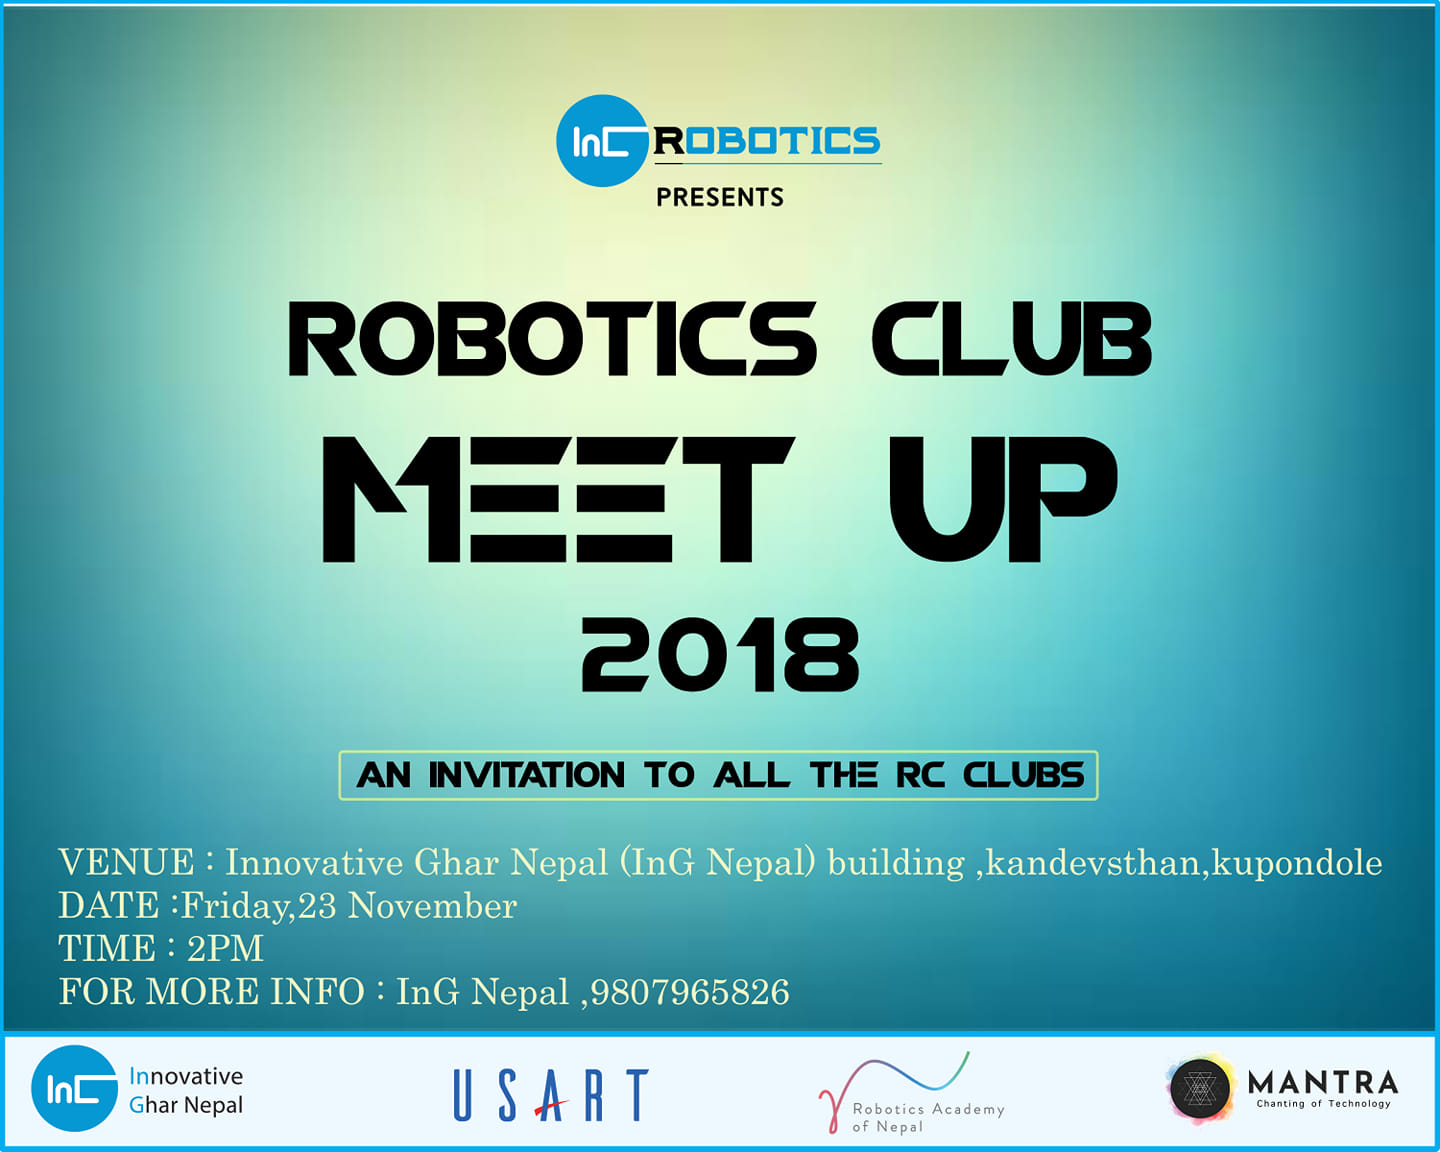 InG Nepal is organizing Robotics Club Meetup 2018